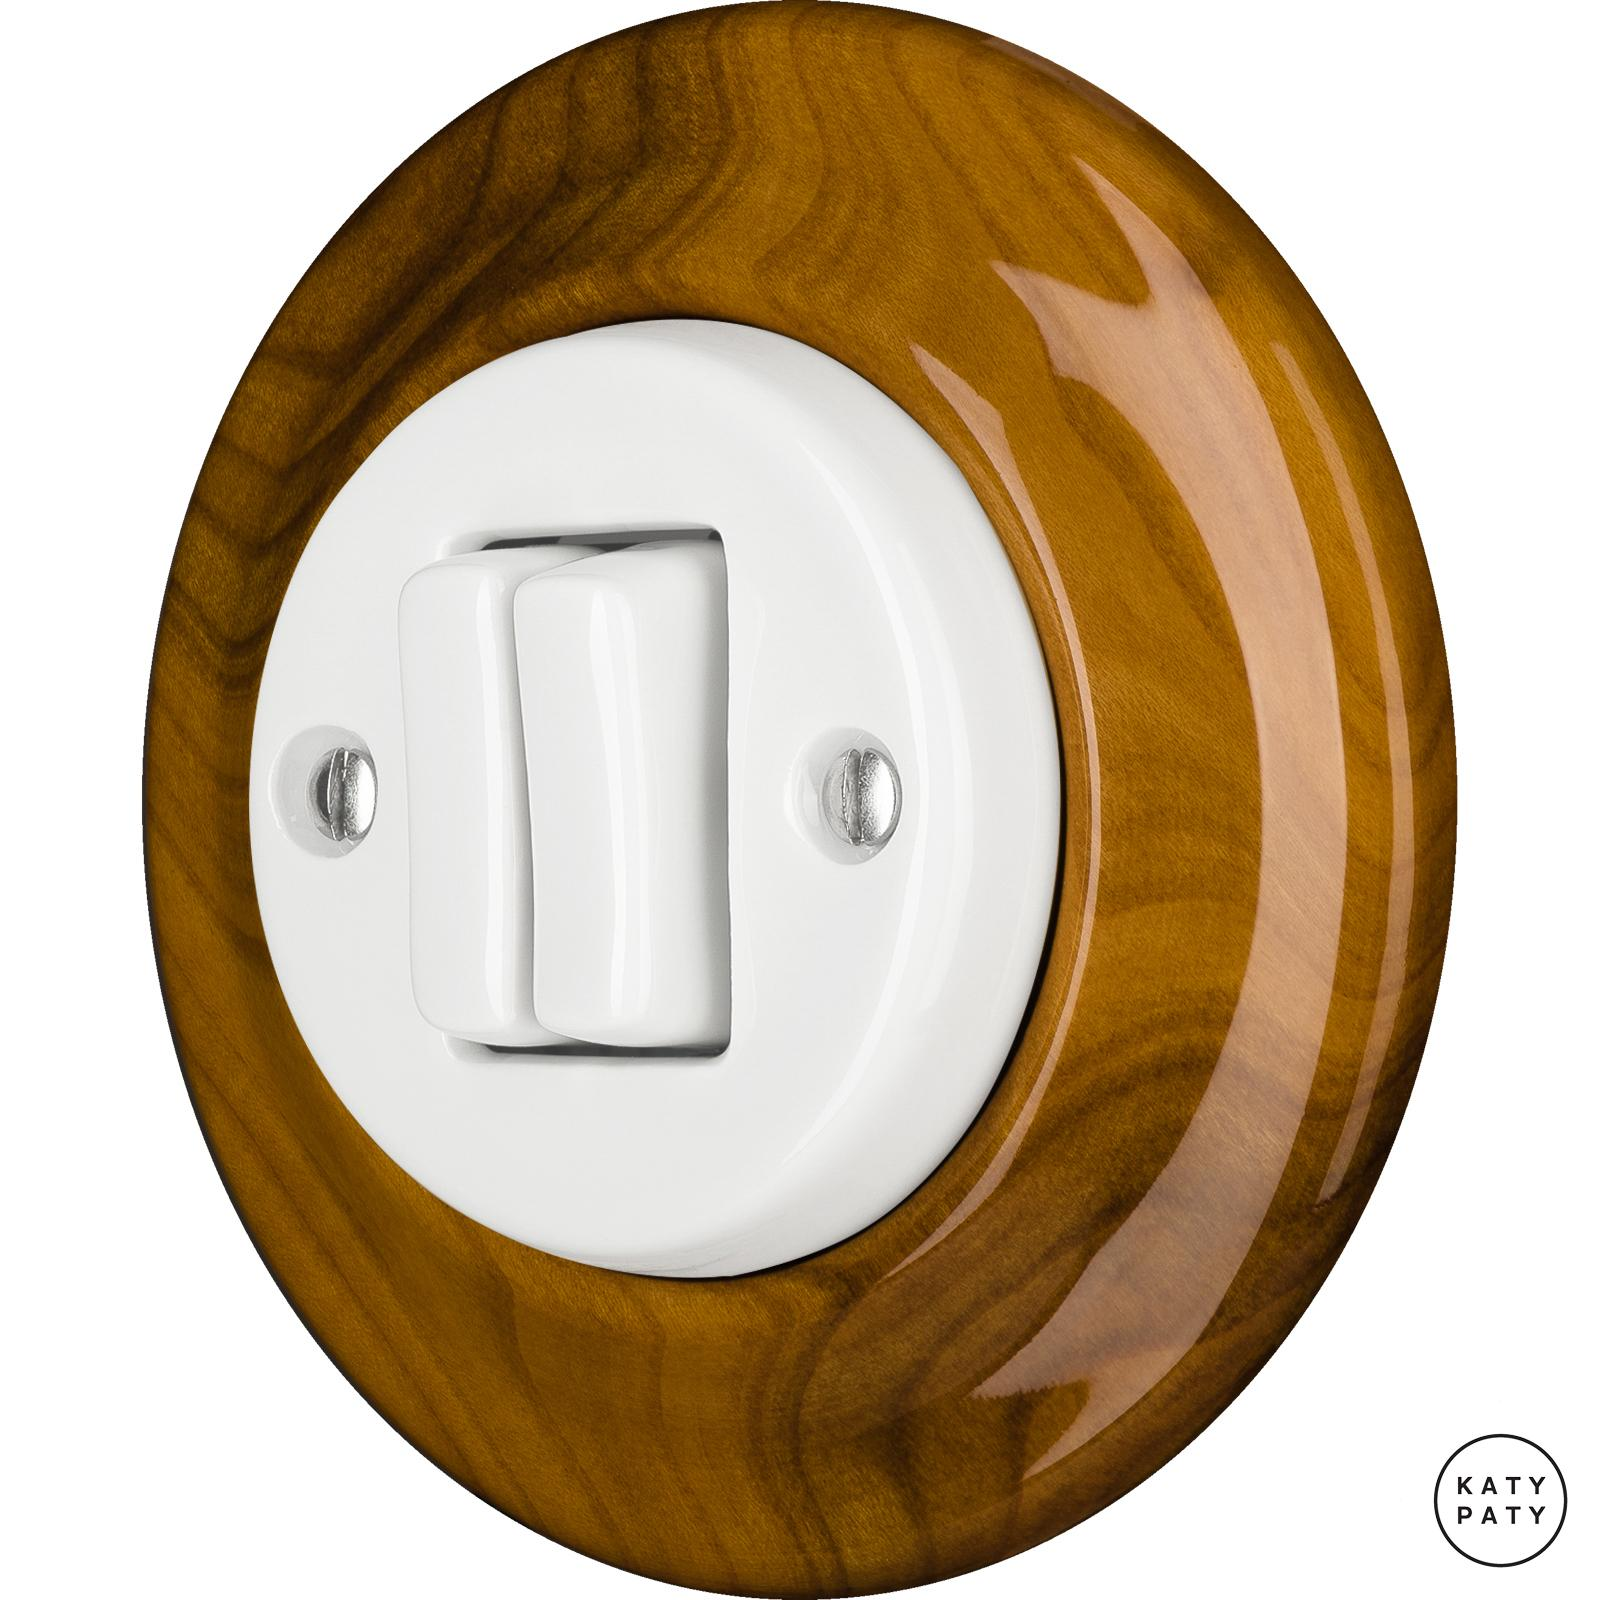 Porcelain switches - a double gang ()  - PADELUS | Katy Paty